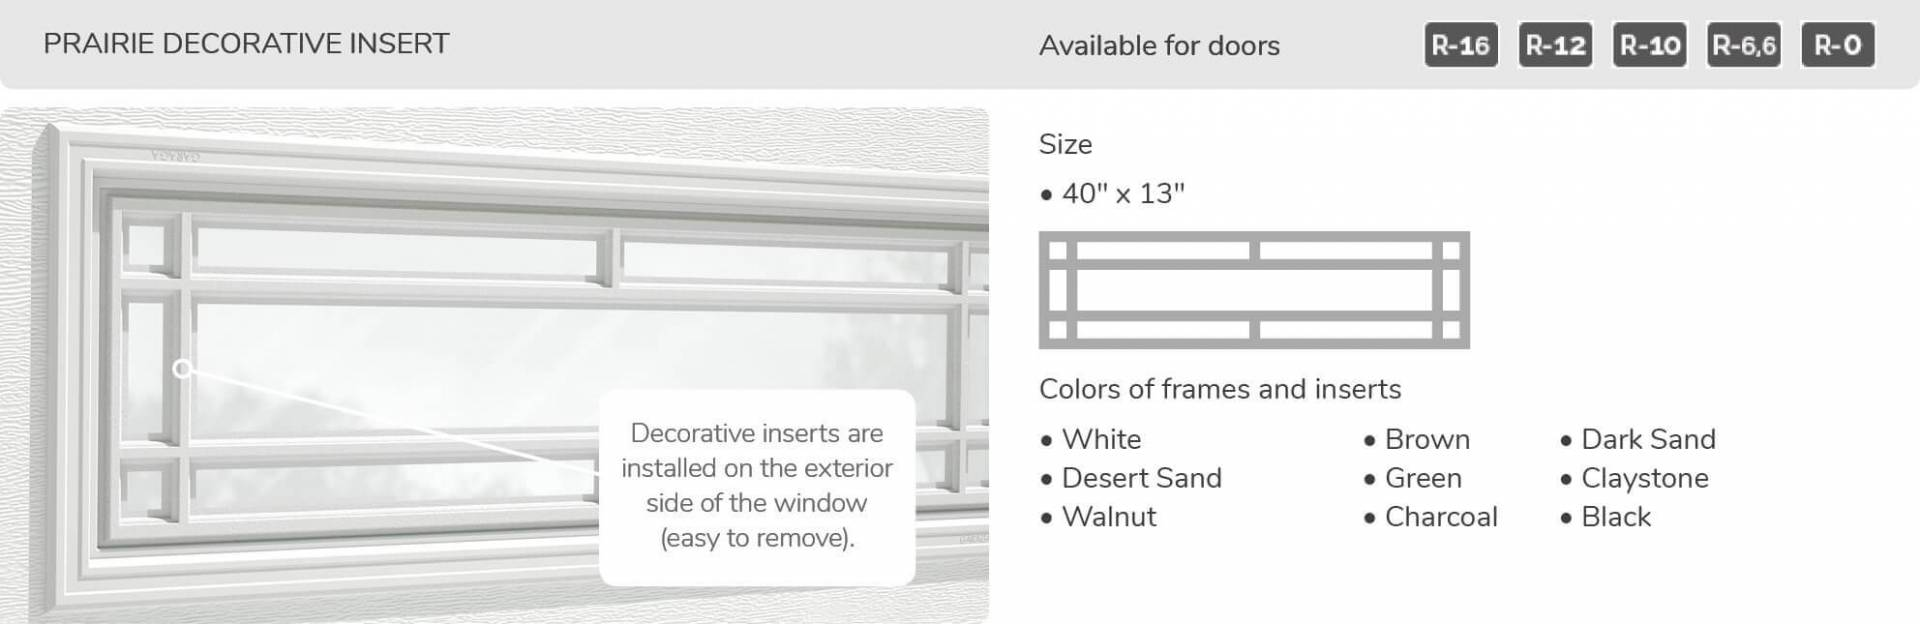 Prairie Decorative Insert, 40' x 13', available for doors: R-16, R-12, R-10, R-6.6, R-0